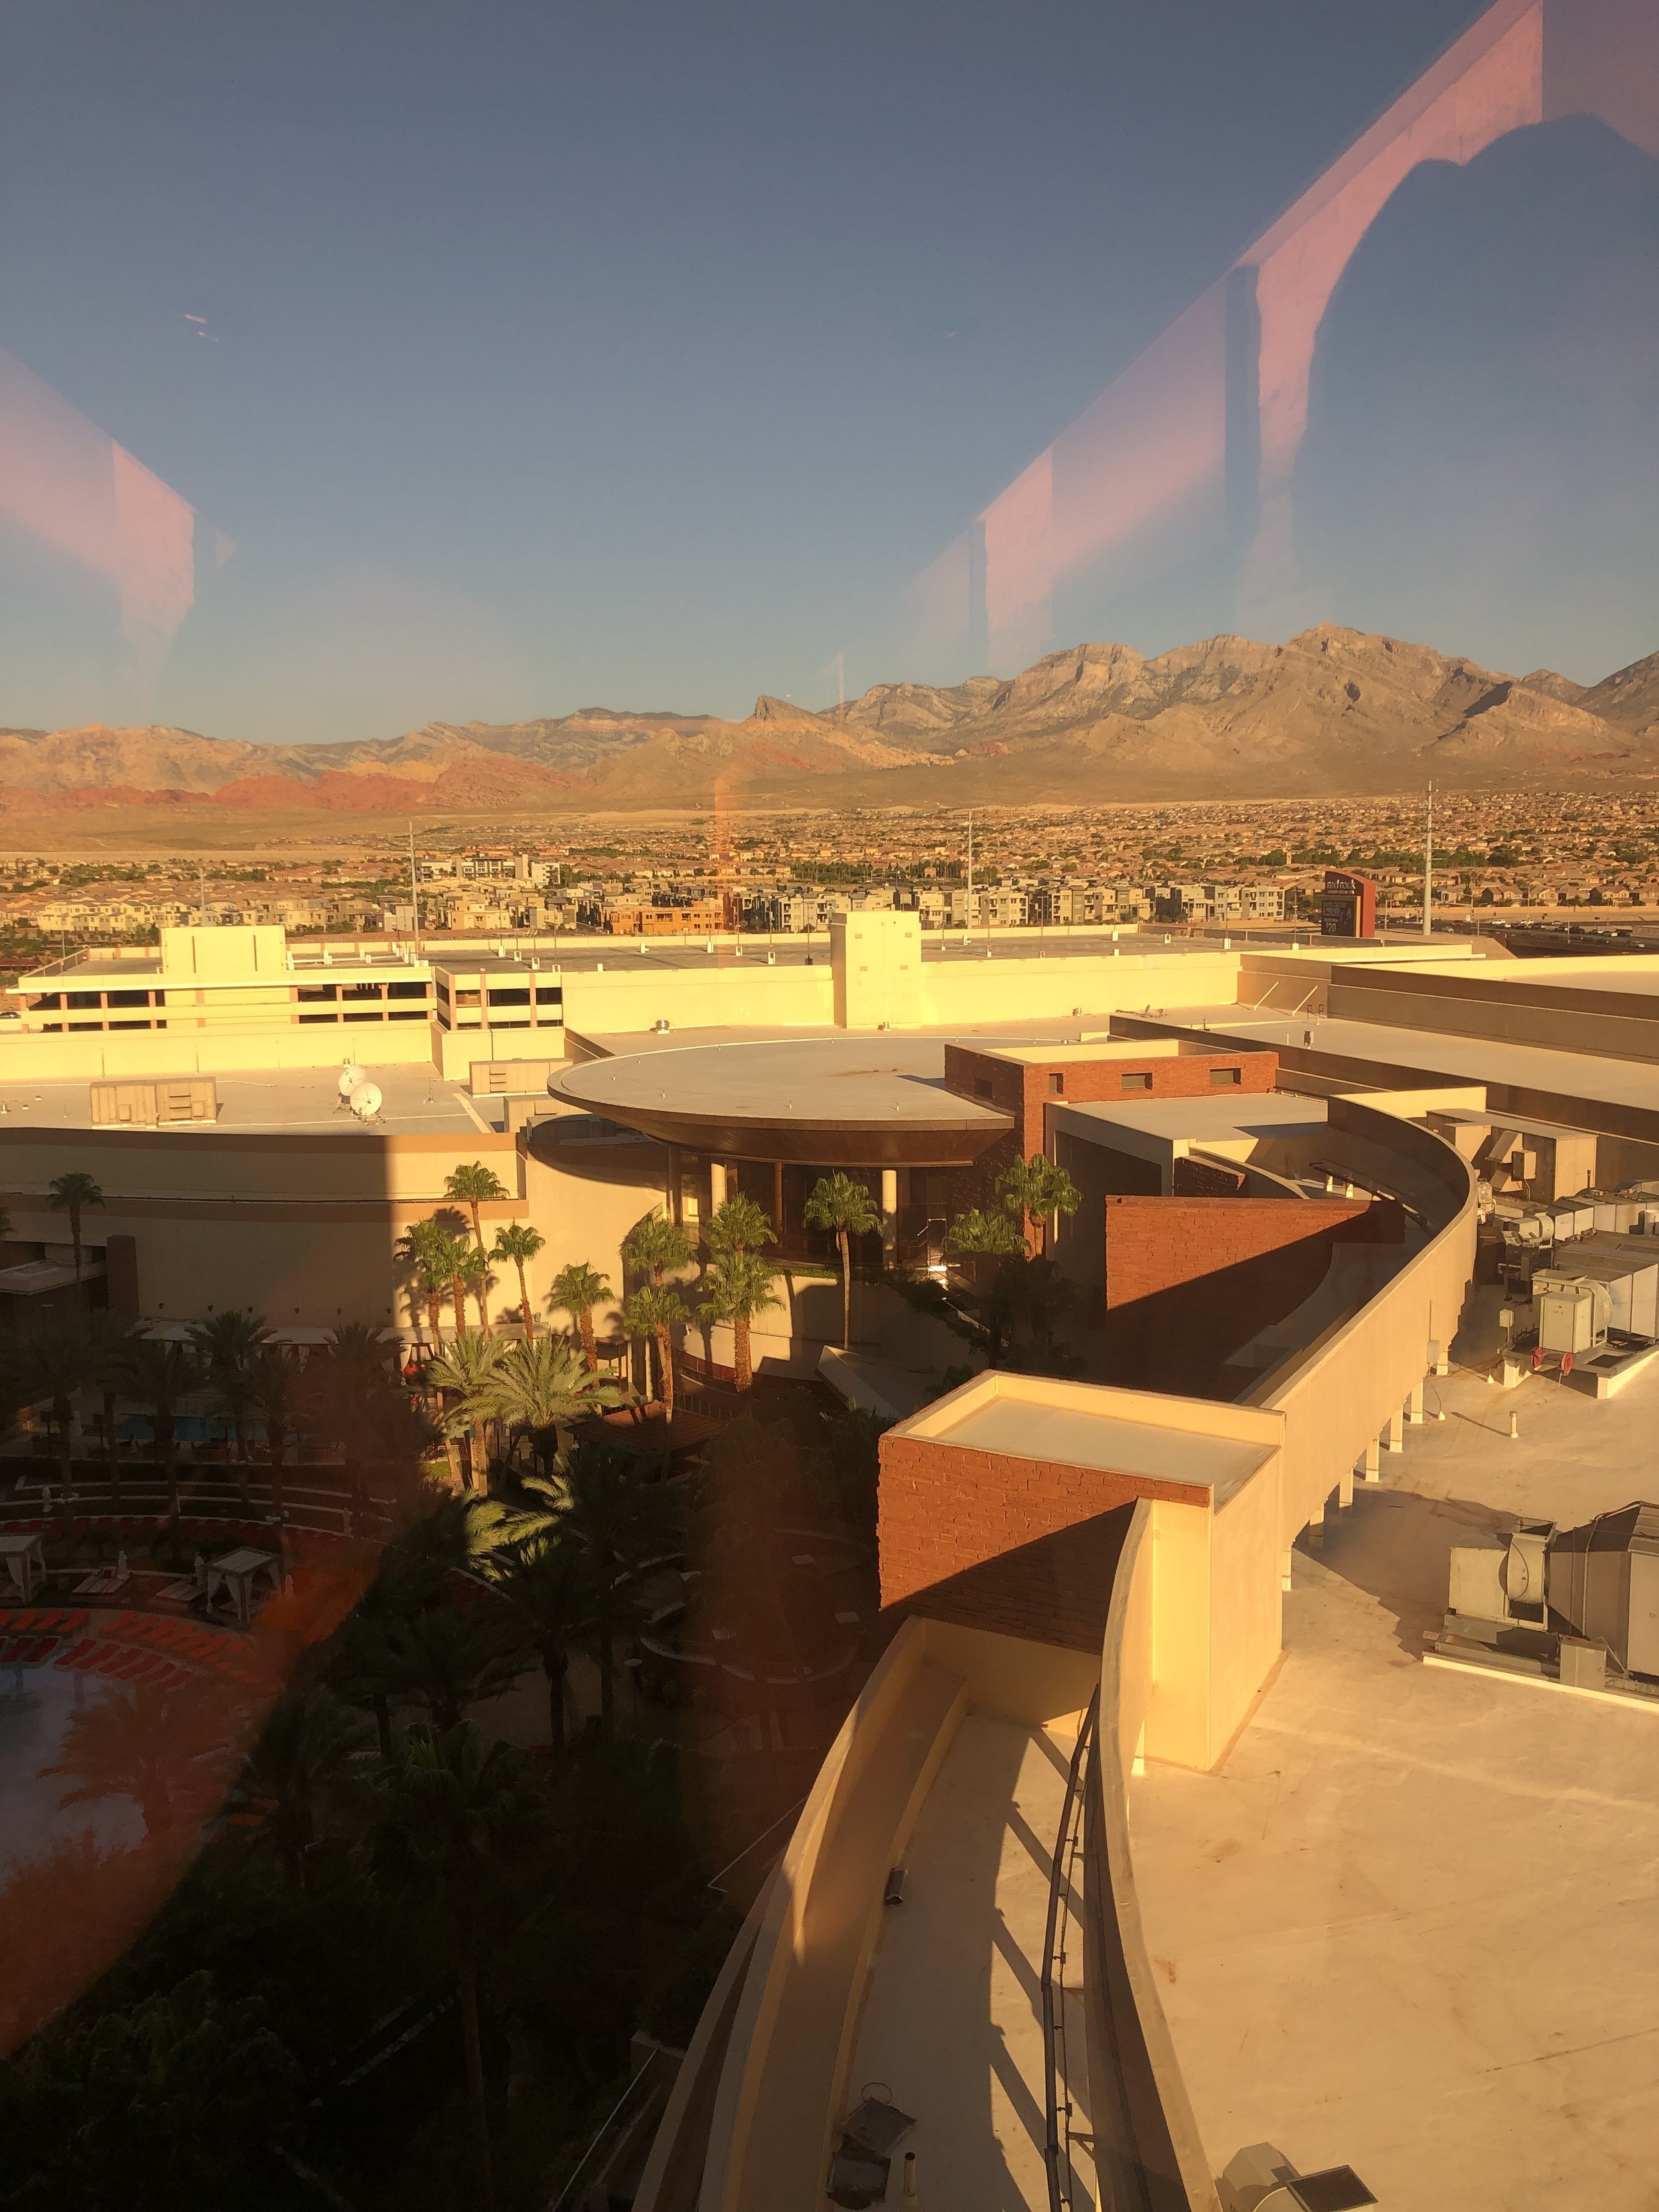 View out the window of the Red Rock Resort and Casino